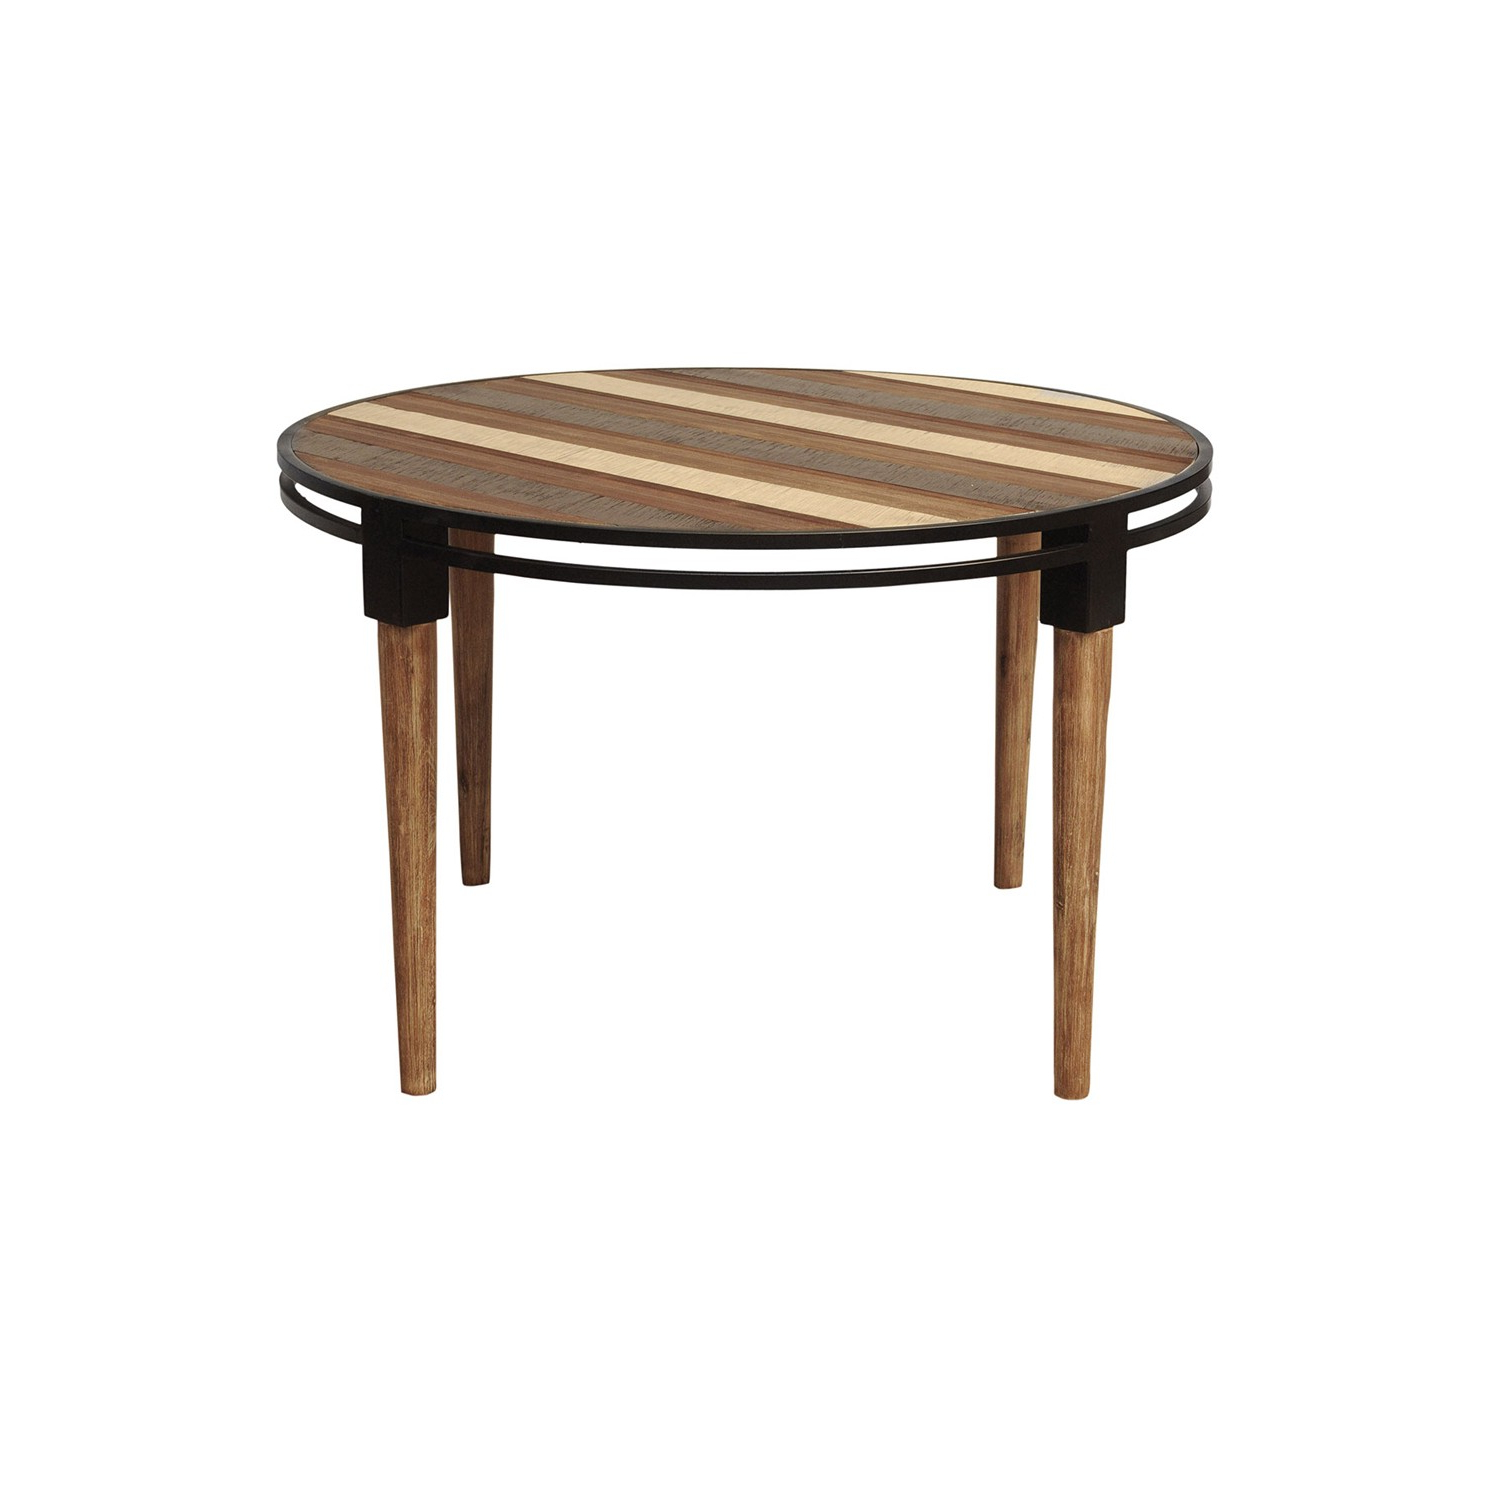 Acacia Wood Medley Medium Dining Tables With Metal Base Pertaining To Well Liked Medley Round Dining Table (View 6 of 30)